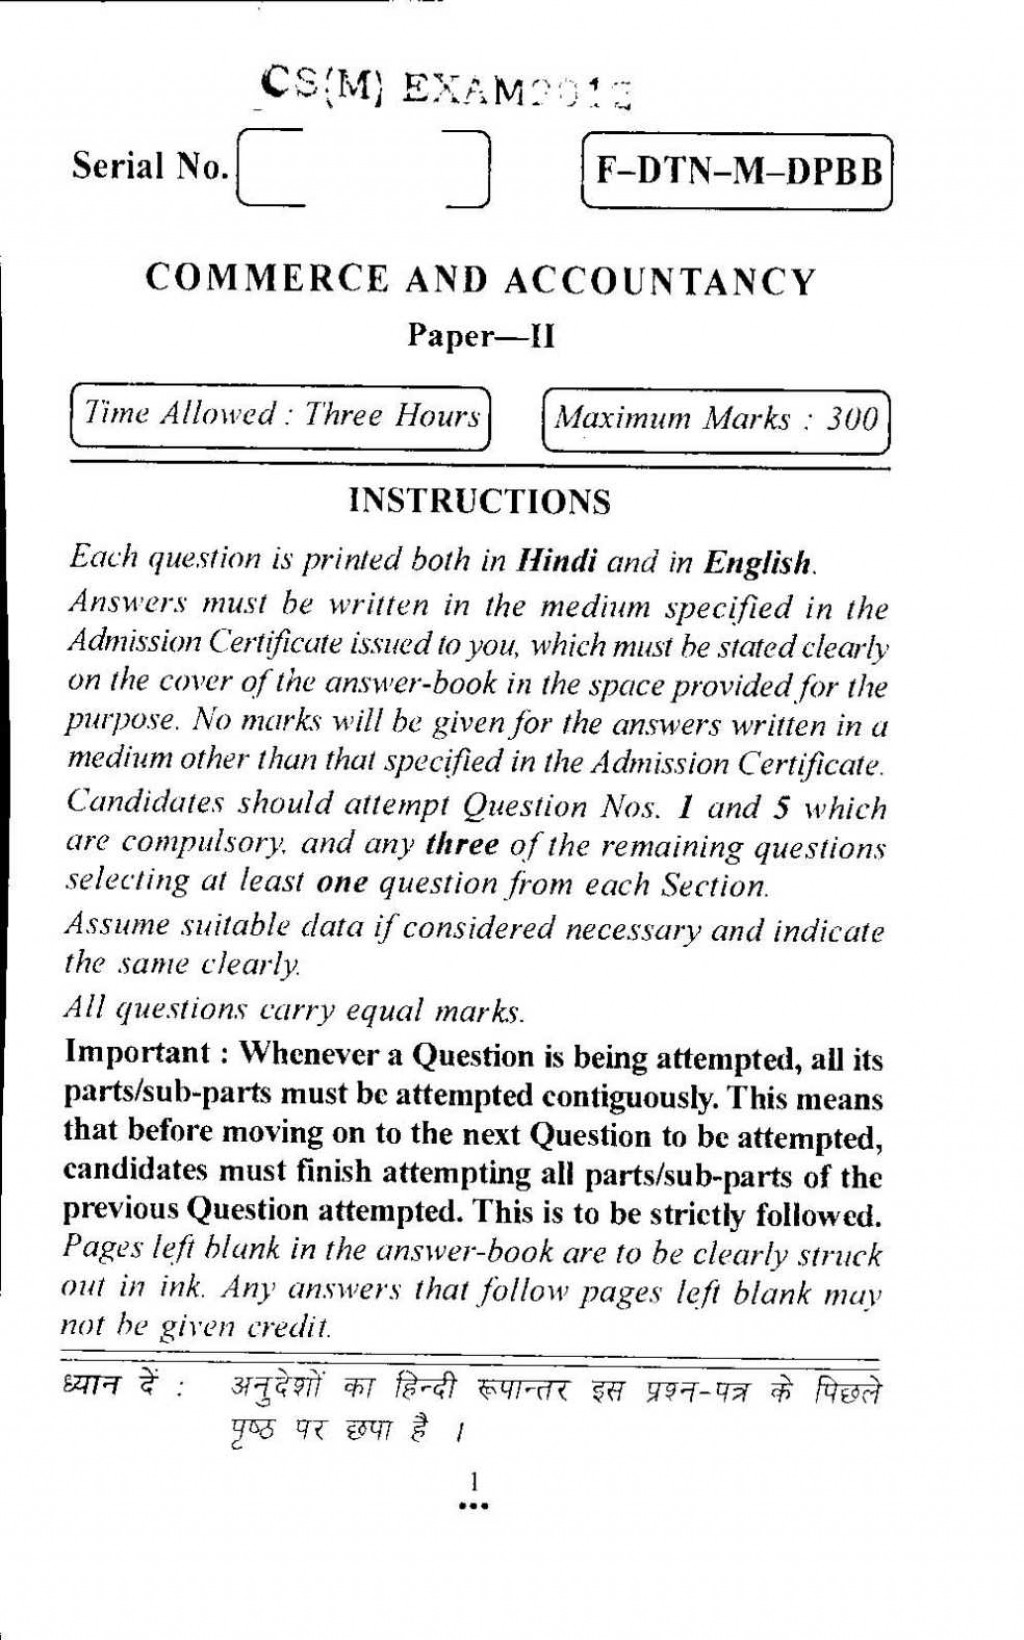 009 Essays On Racism Essay Example Civil Services Examination Commerce And Accountancy Paper Ii Previous Years Que Unbelievable In Schools Best Argumentative Large